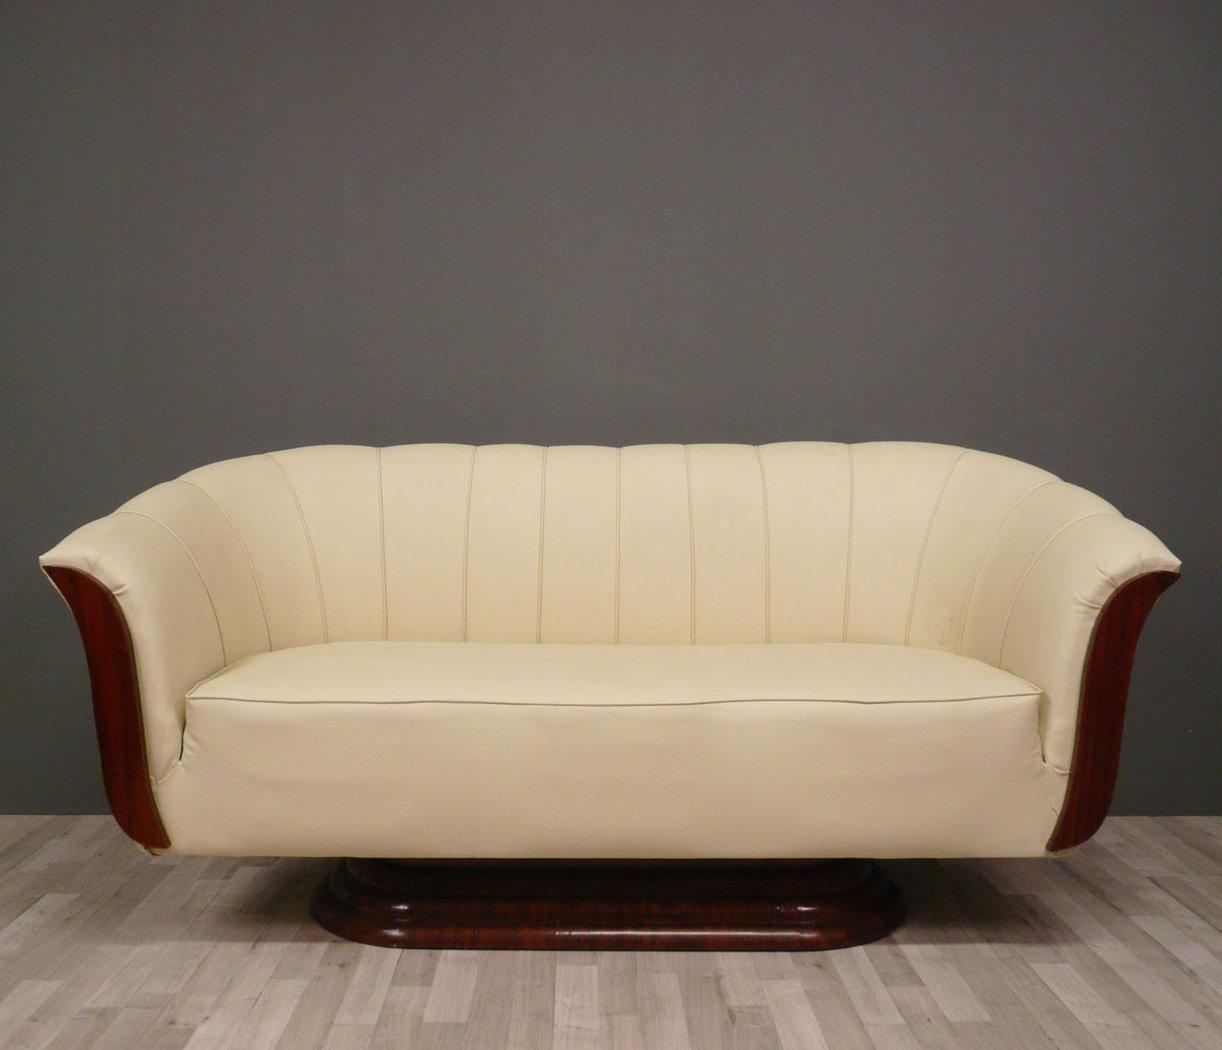 Sofas Center : Arteco Sofa Swedish Satin Birch Upholsteredrupal Throughout Art Deco Sofa And Chairs (Image 18 of 20)